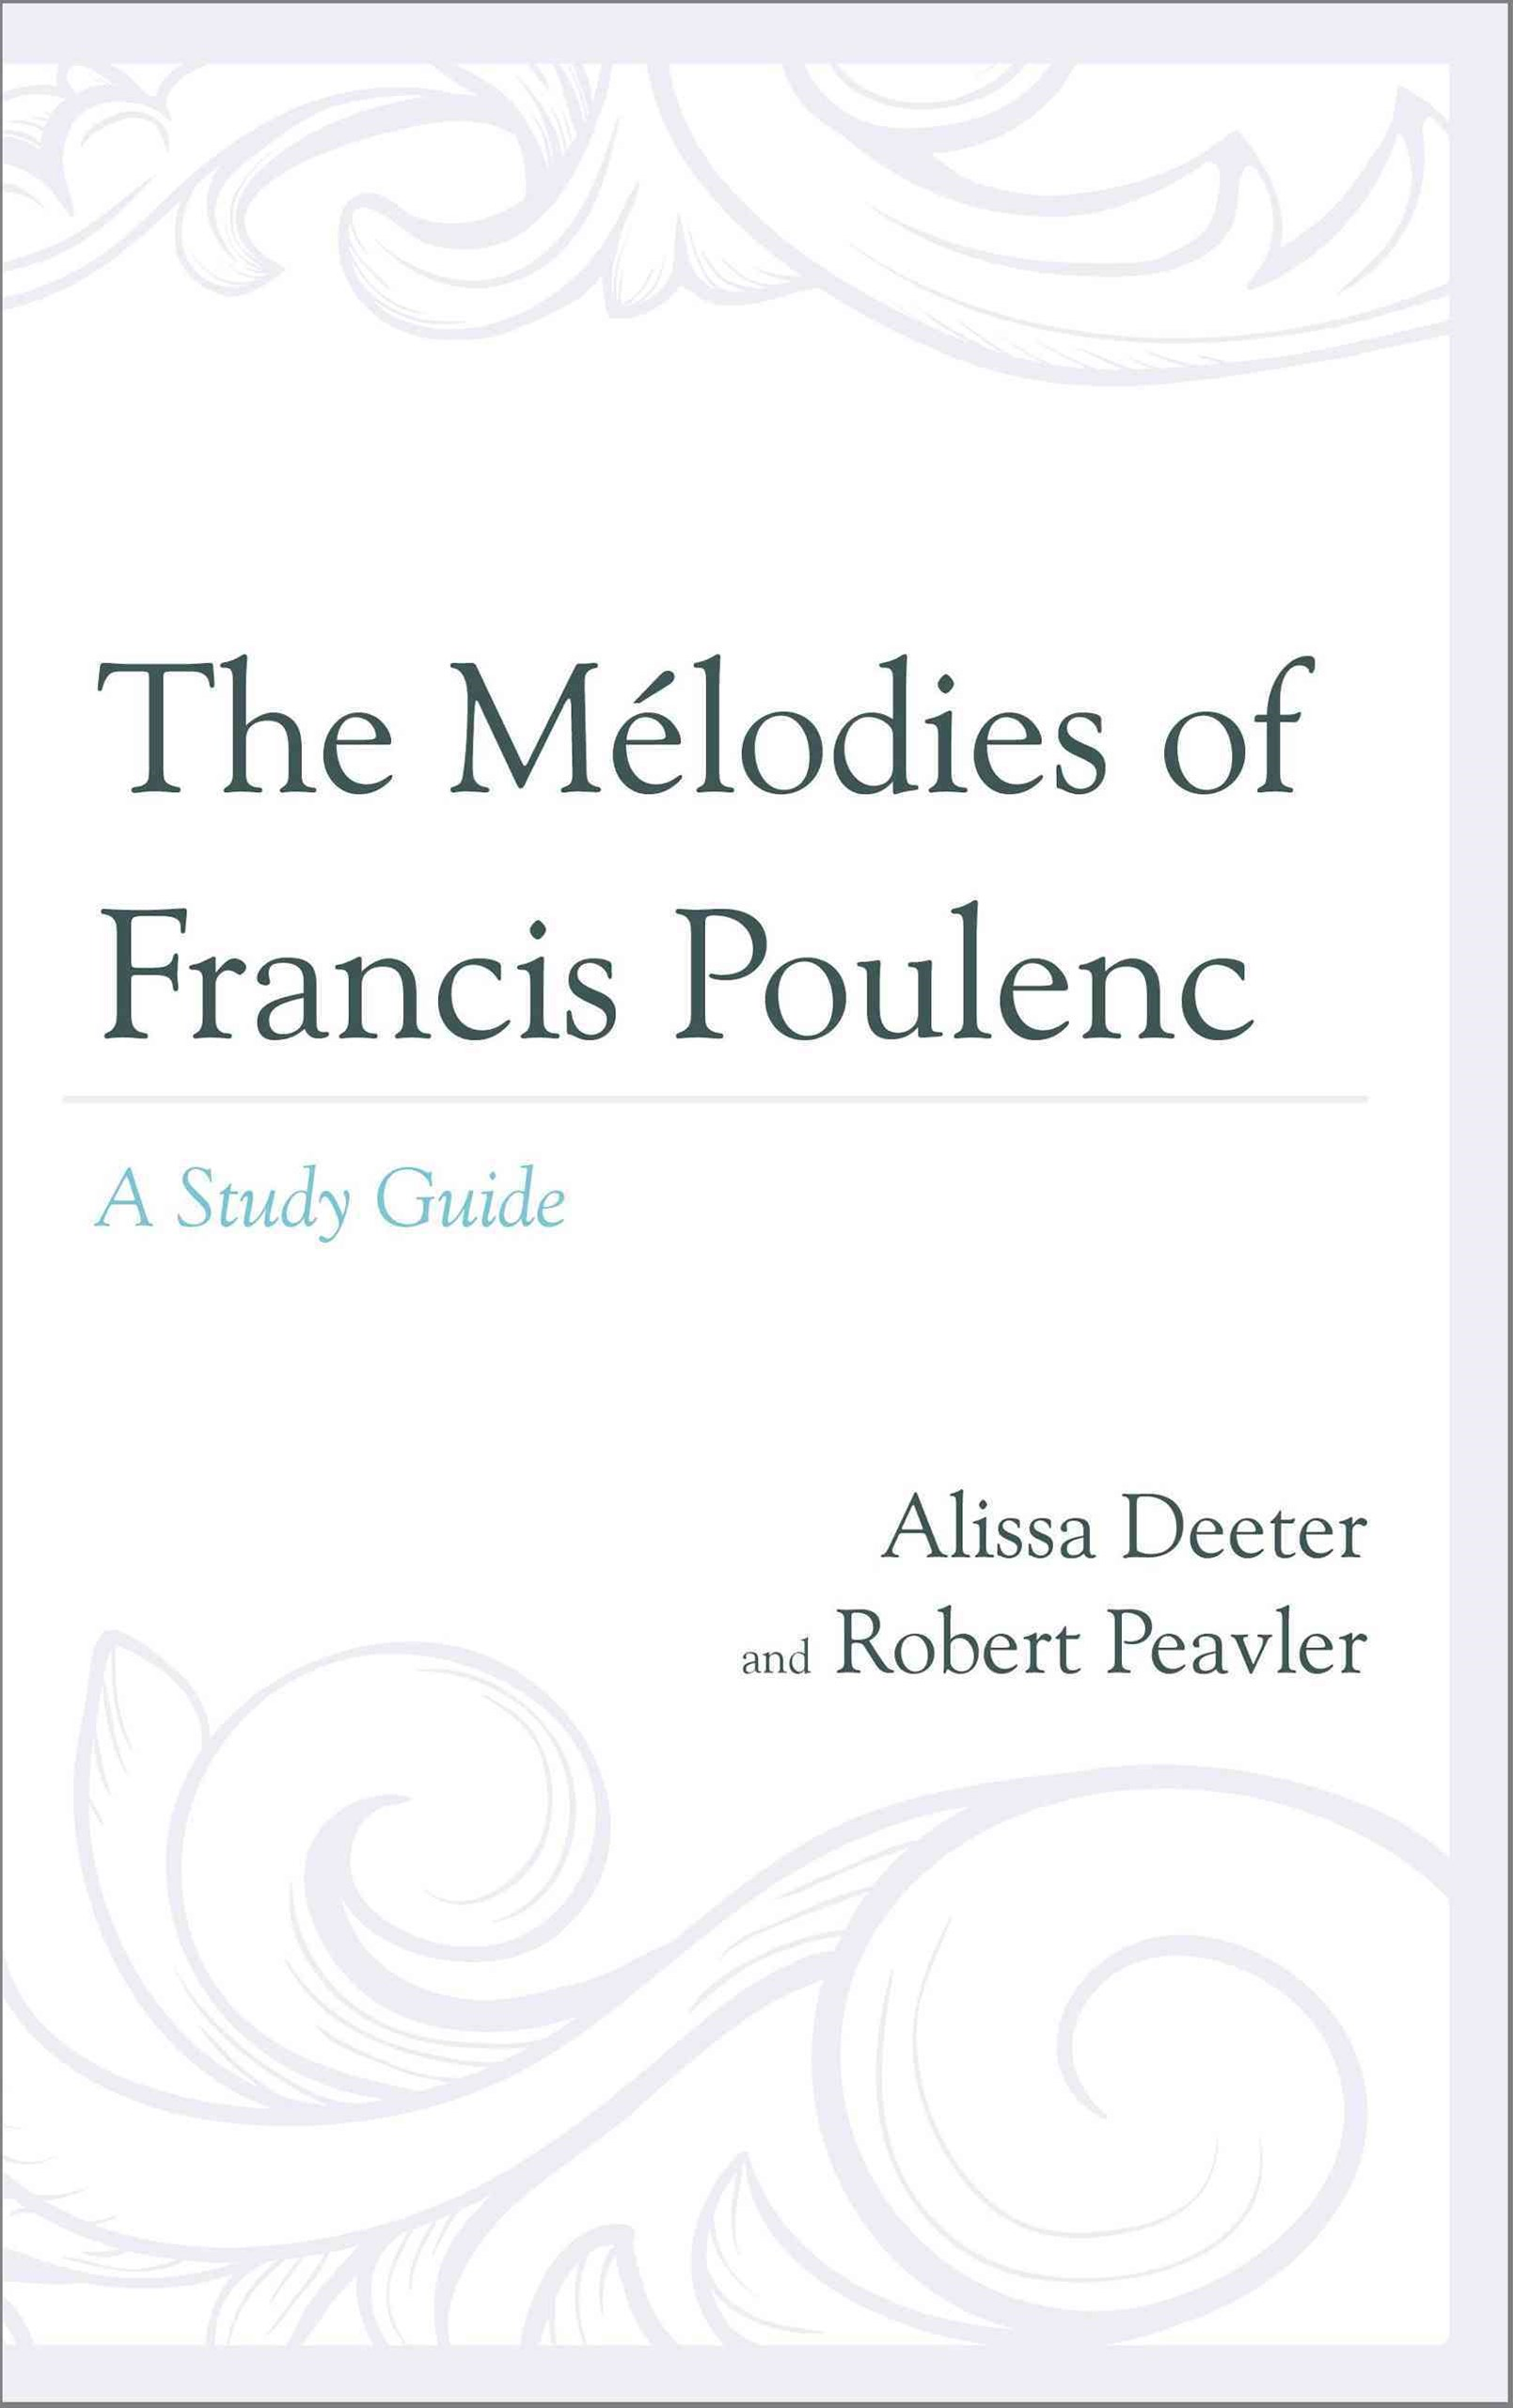 Melodies of Francis Poulenc